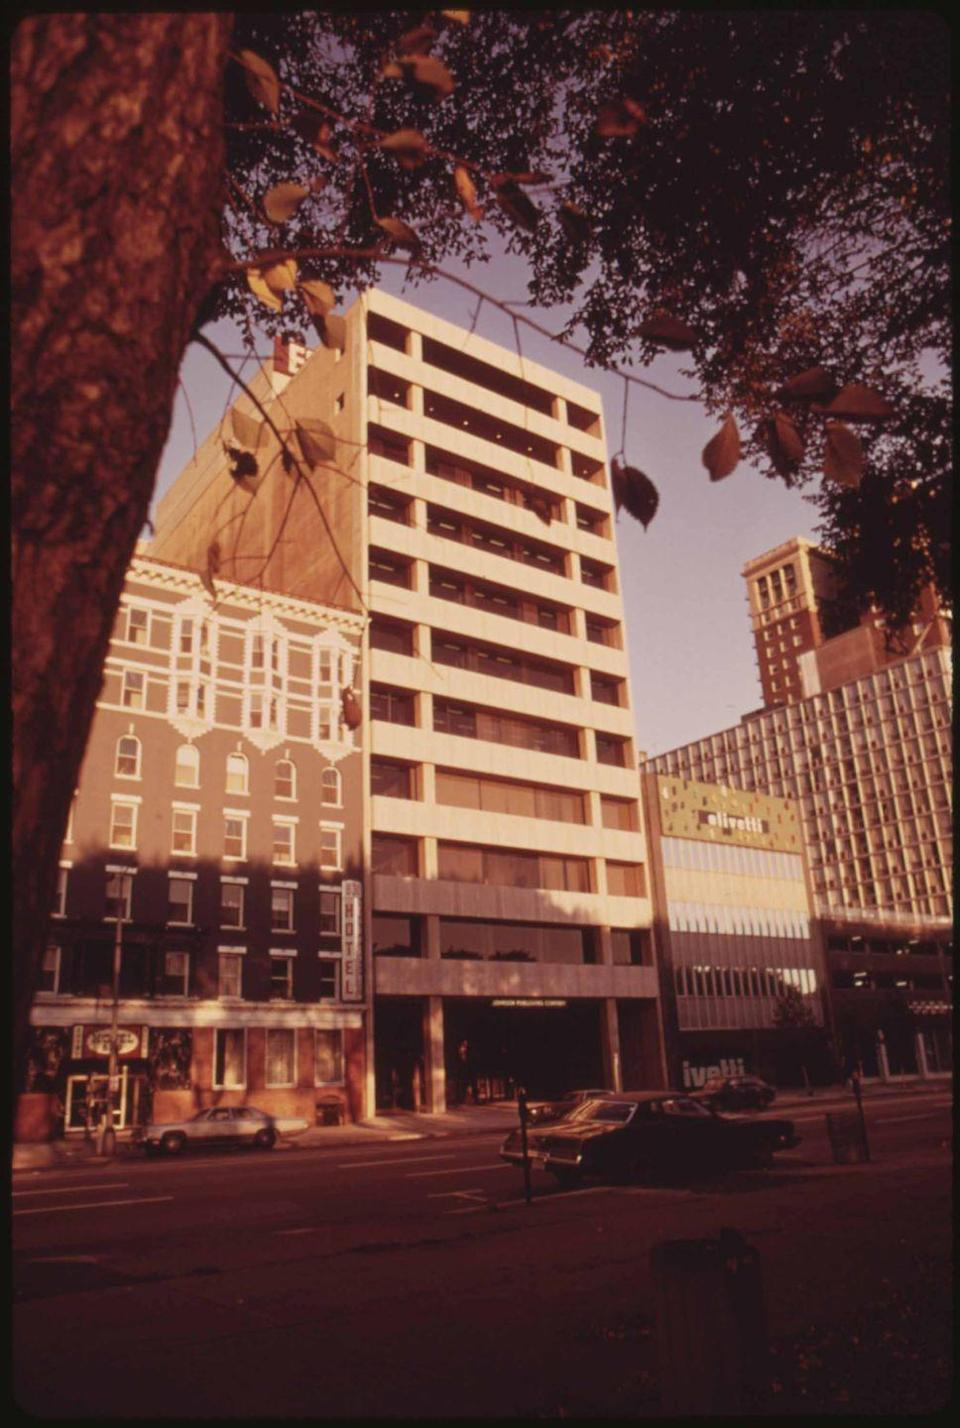 """<p>After graduating in 1948 with a degree in architecture from the Illinois Institute of Technology where he studied under Mies Van Der Rohe, Moutoussamy became the first Black architect to design a high-rise building in Chicago. That building, the Johnson Publishing Company headquarters (shown), was home to the <em>Ebony</em> and <em>Jet </em>magazine offices and remains the only downtown Chicago tower designed by a Black architect.</p><p>Moutoussamy designed many other buildings in Chicago, including Richard J. Daley College, Olive–Harvey College, Harry S. Truman College, and the Chicago Urban League building. He was a partner at Dubin Dubin Black & Moutoussamy and served on the board of trustees of Loyola University Chicago and the <a href=""""https://www.artic.edu/"""" rel=""""nofollow noopener"""" target=""""_blank"""" data-ylk=""""slk:Art Institute of Chicago"""" class=""""link rapid-noclick-resp"""">Art Institute of Chicago</a>.</p>"""